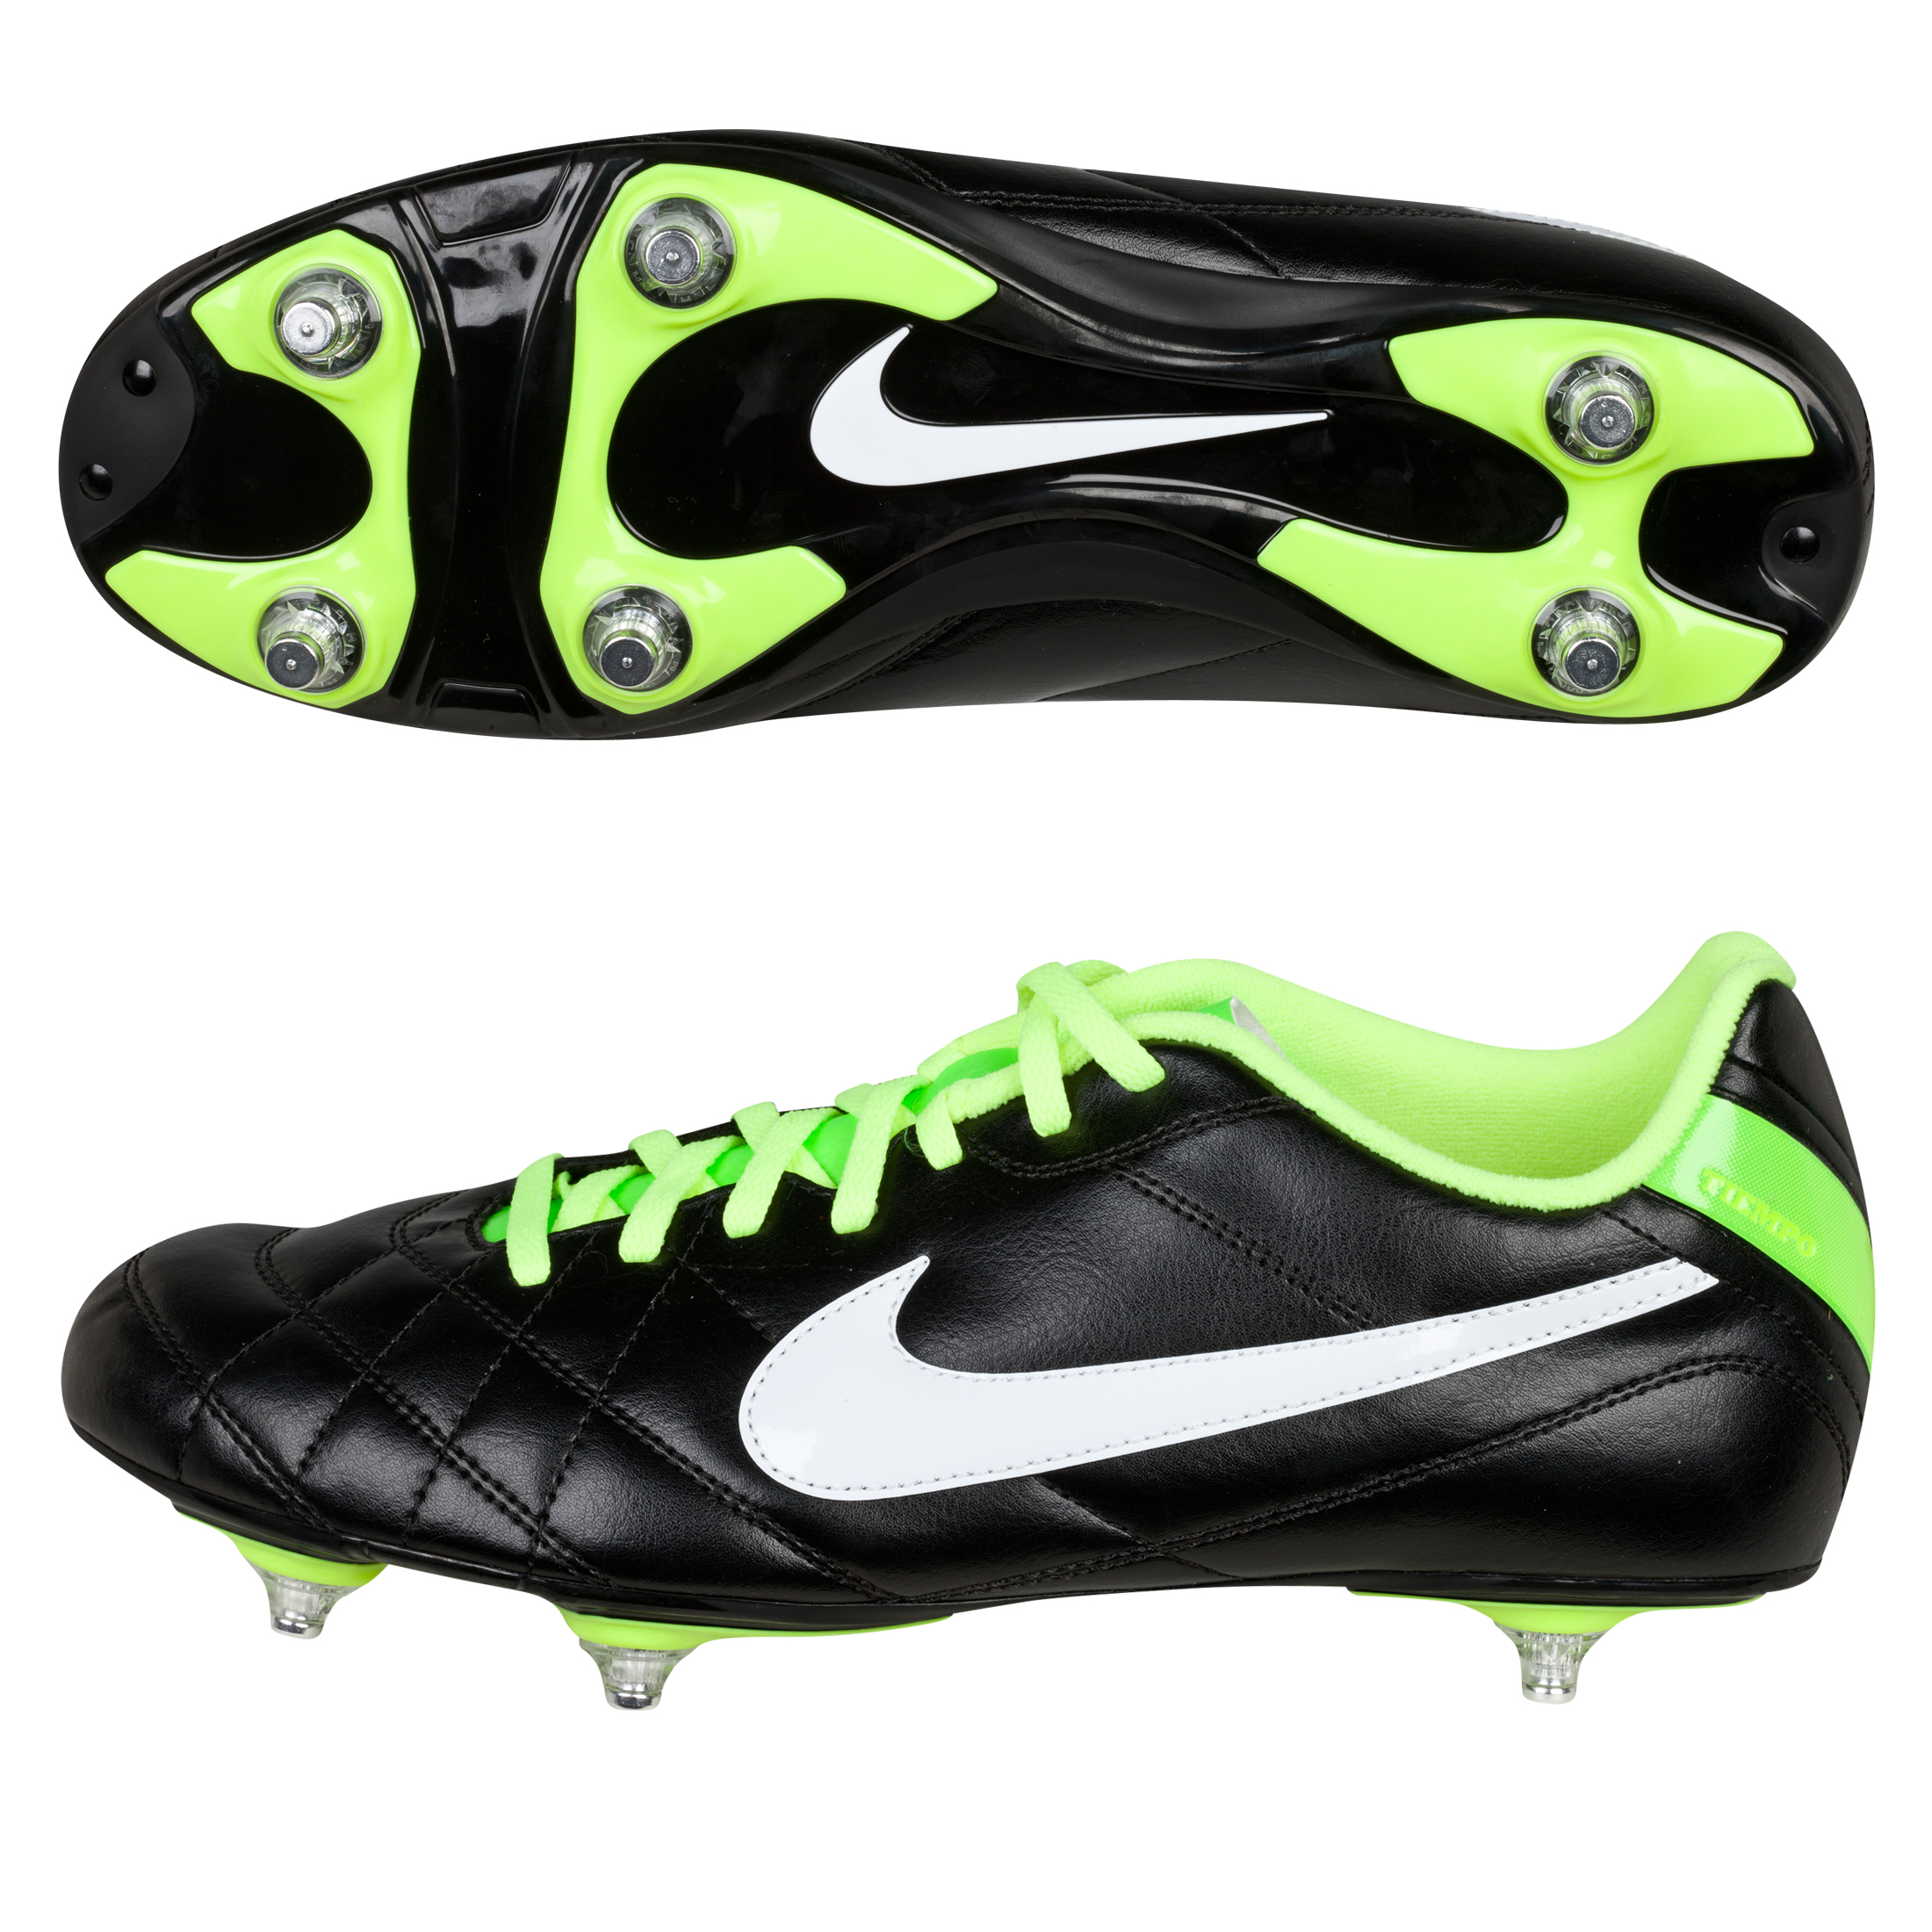 Nike Tiempo Rio Soft Ground Football Boots - Black/White/Electric Green